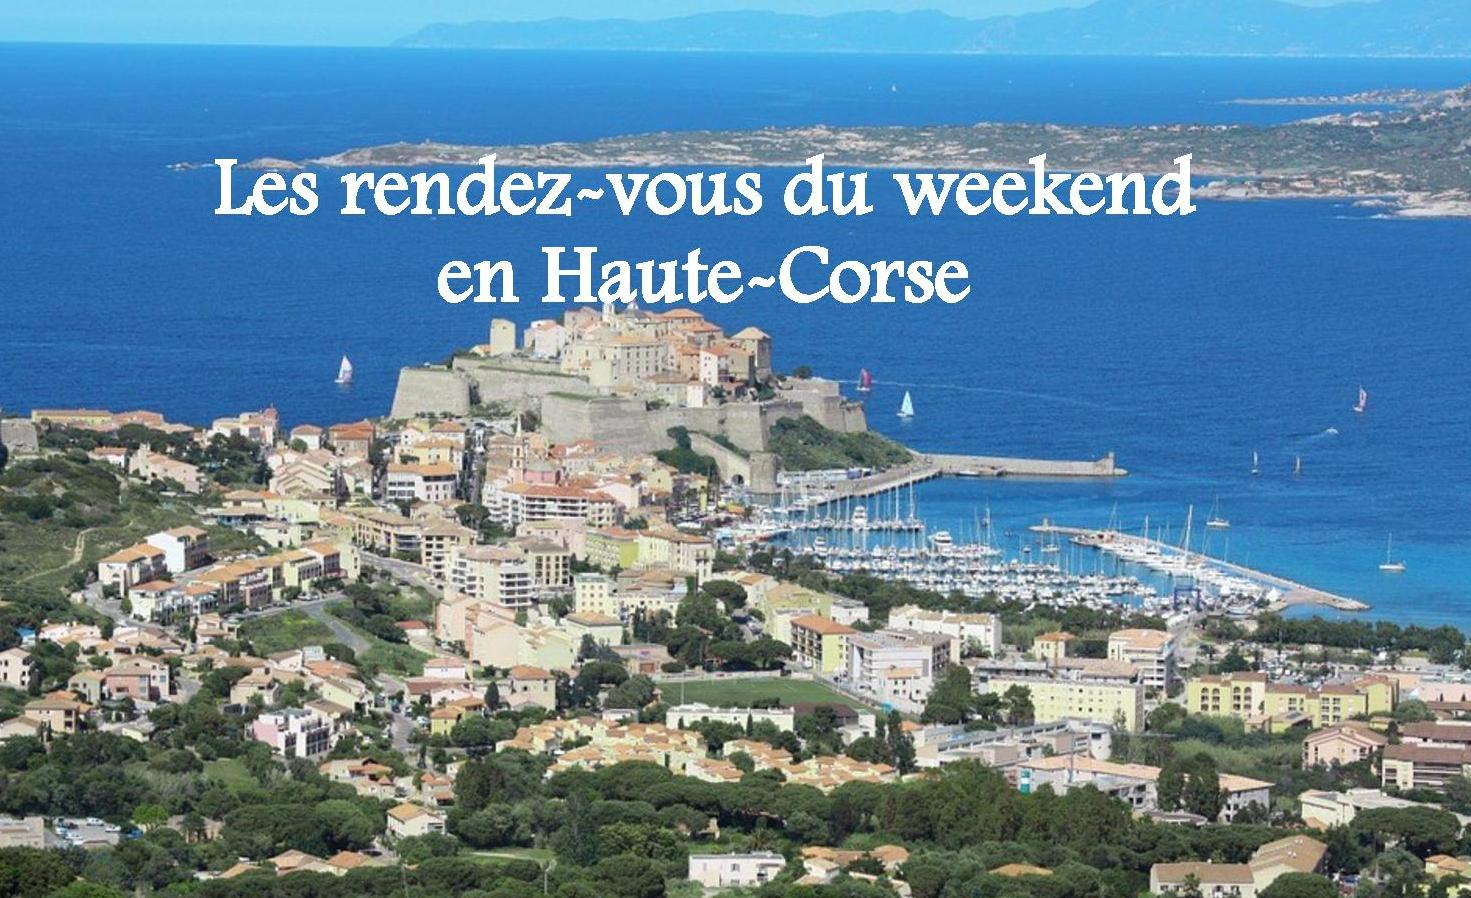 Que faire ce week-end en Haute-Corse ?